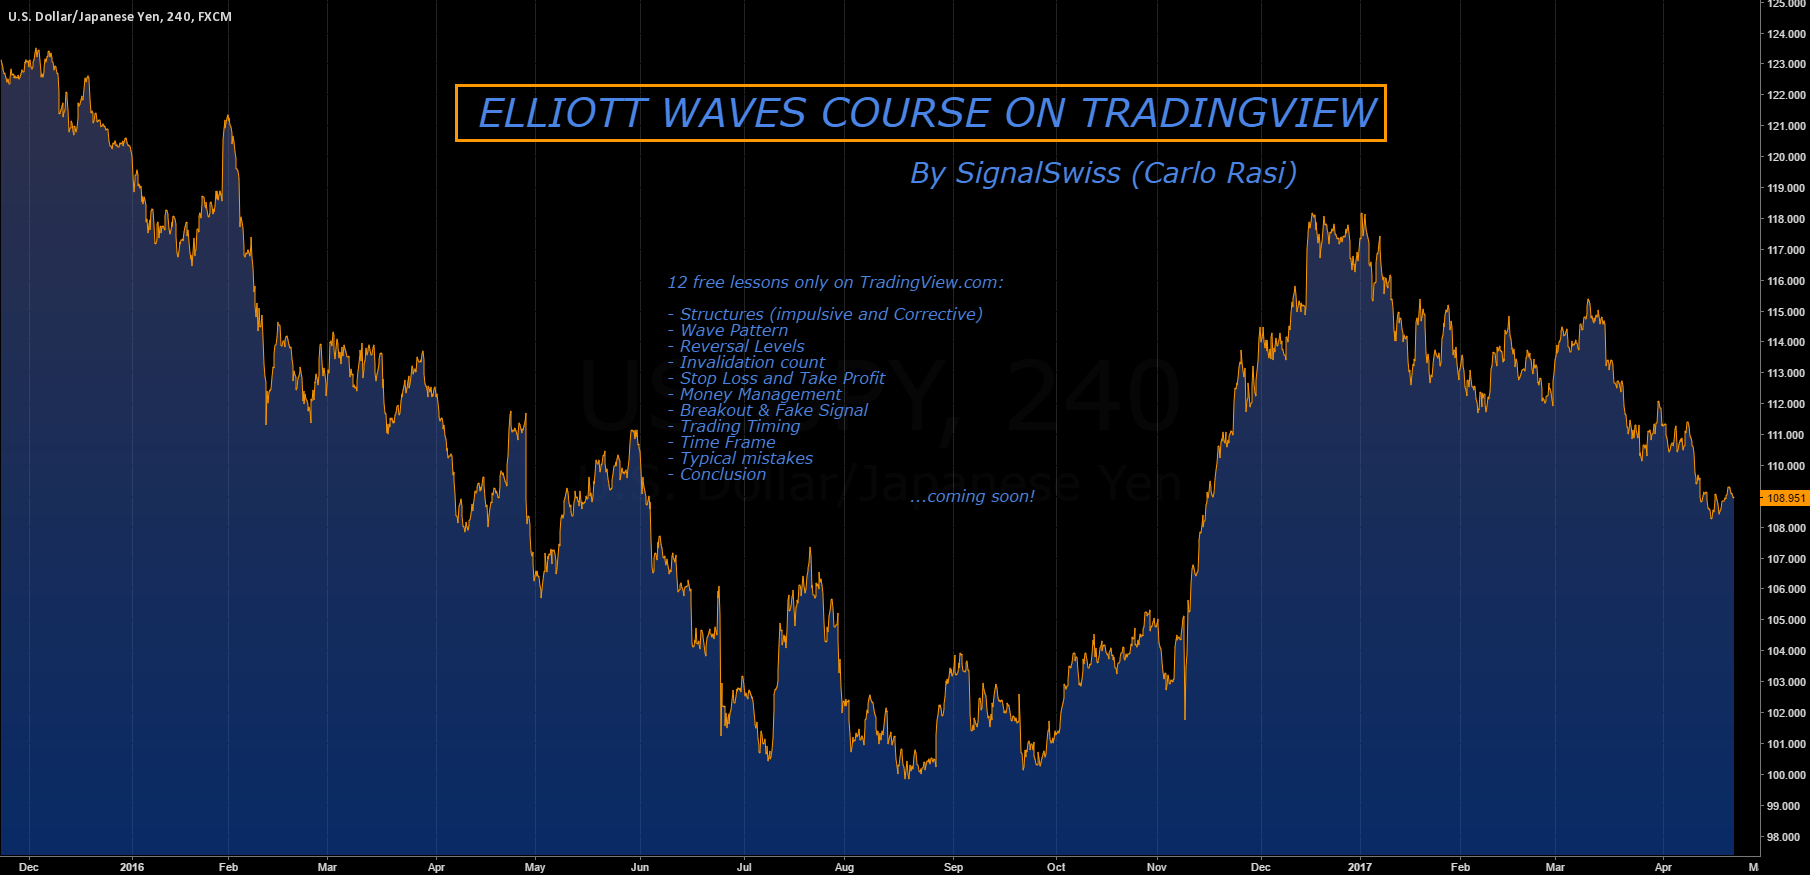 ELLIOTT WAVES COURSE (By SignalSwiss)